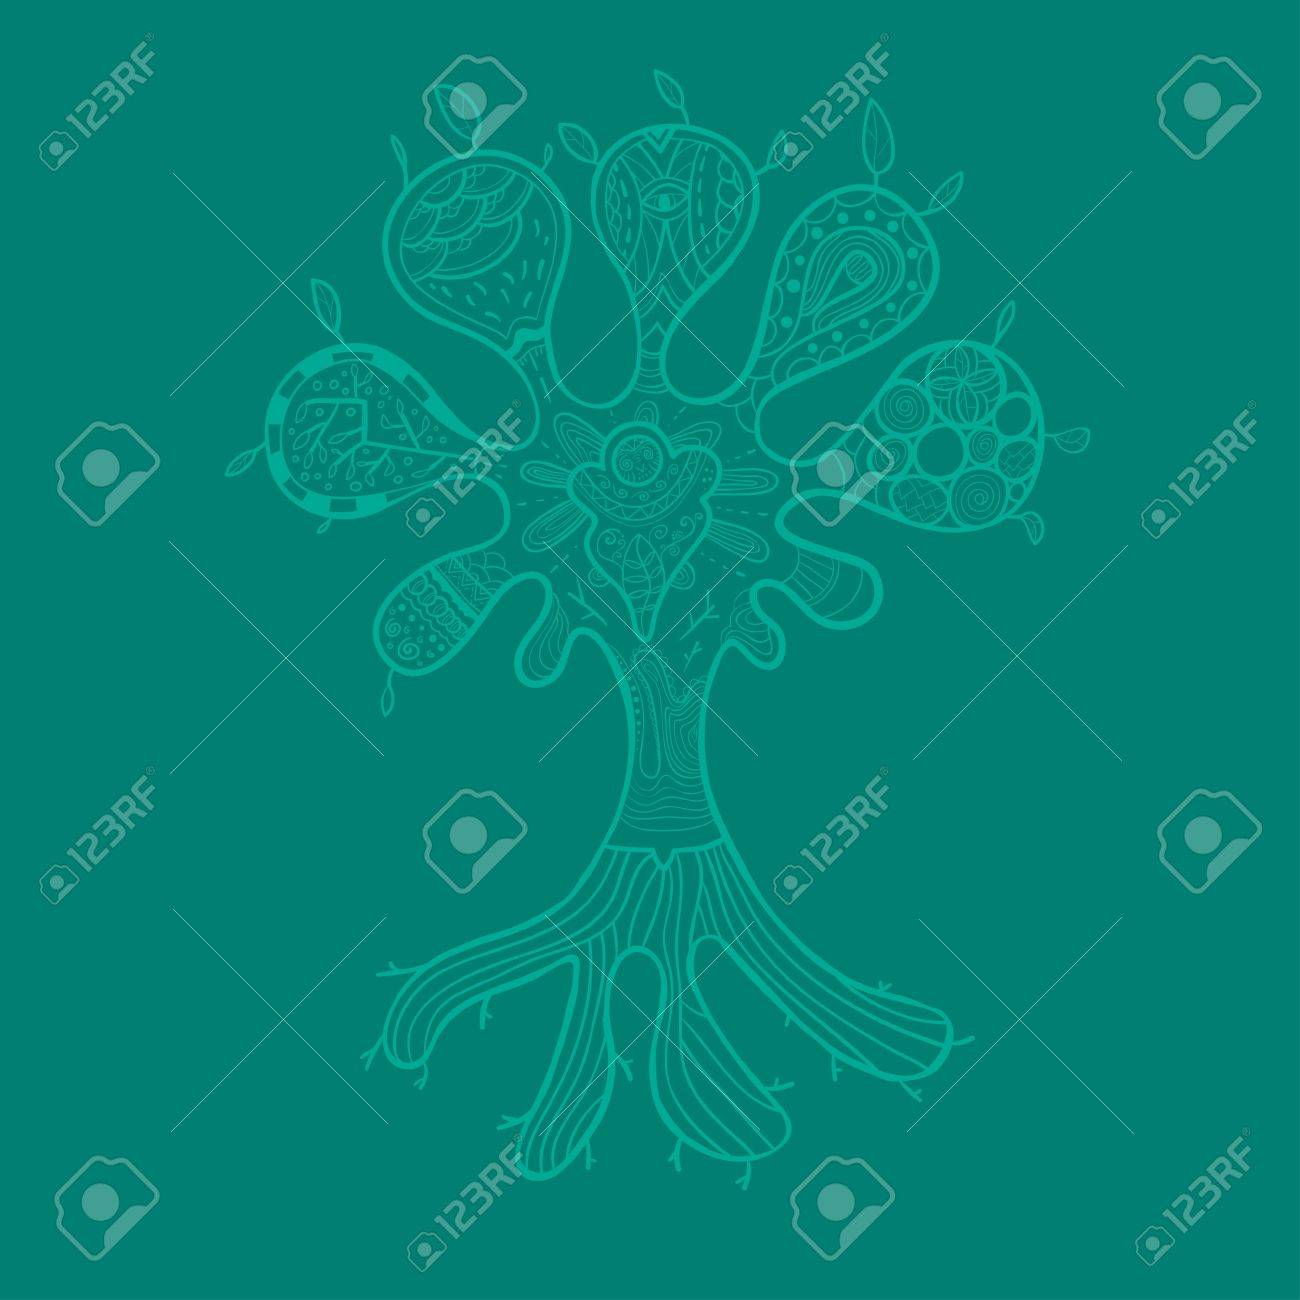 Abstract Tree Illustration Can Be Used As Wallpaper Or Greeting